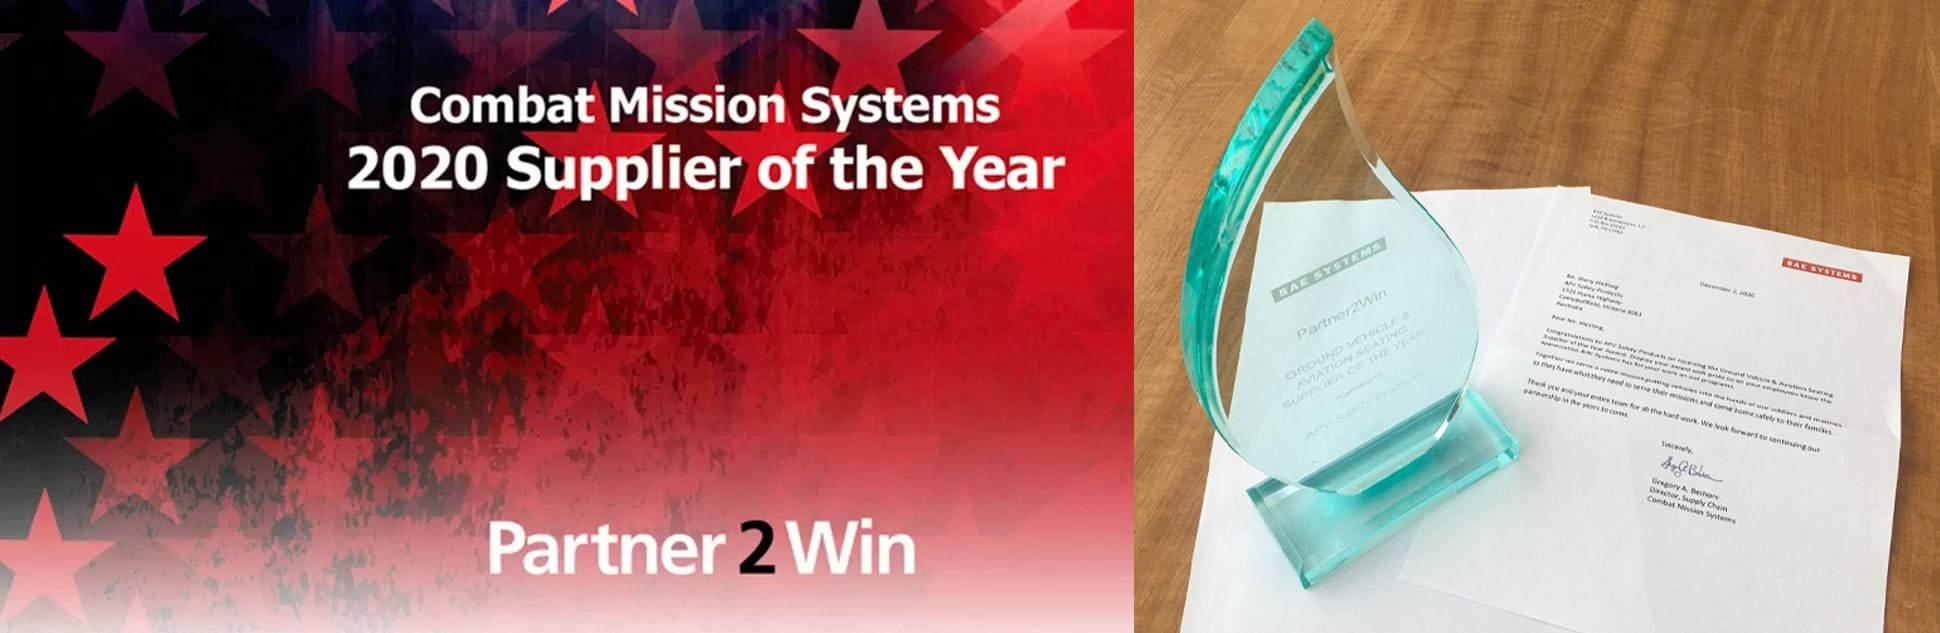 APV Combat Mission Systems 2020 supplier of the year